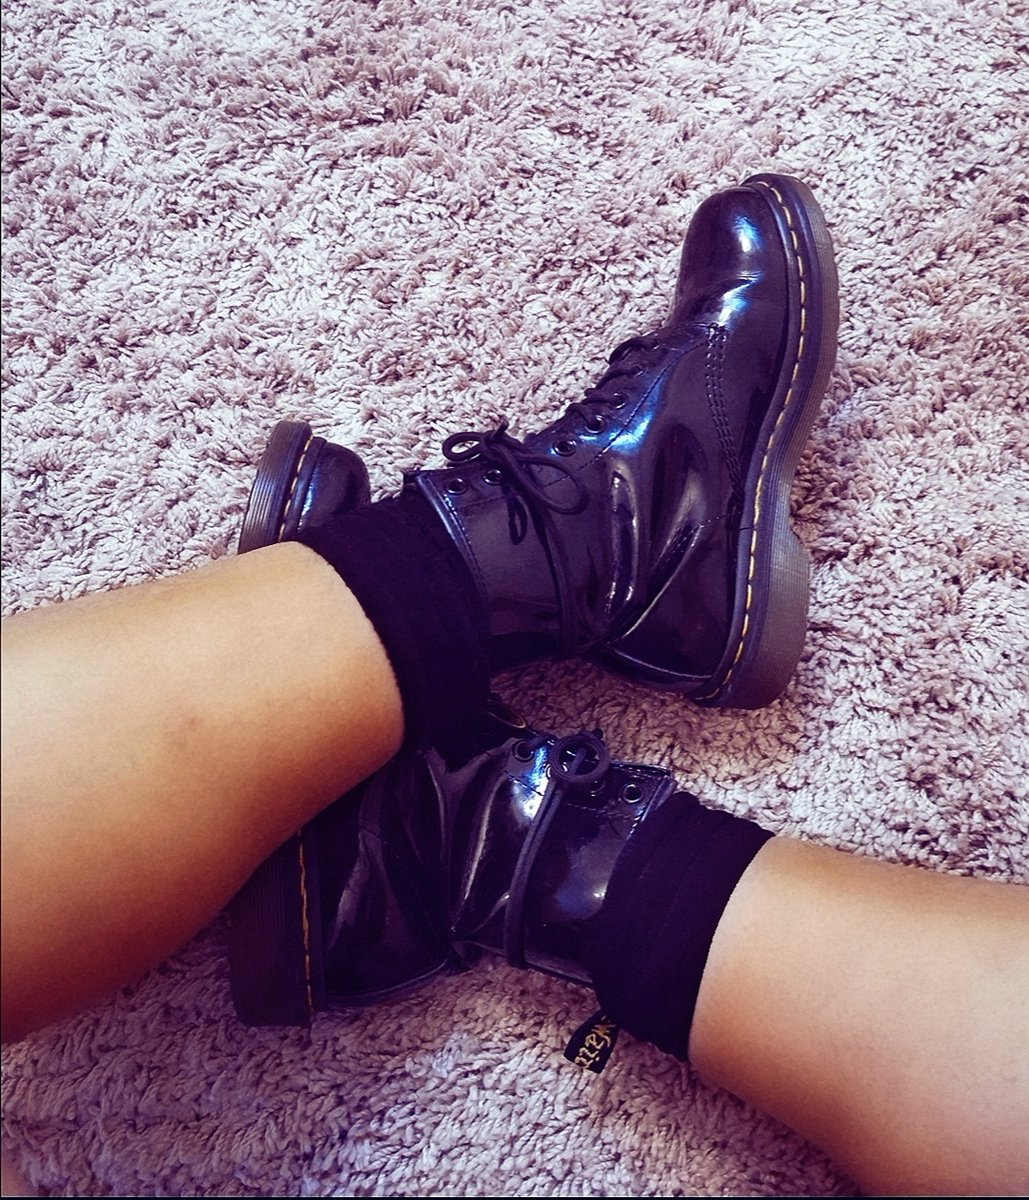 Anyone else still wrap tie their laces on their boots like when they were a teenager?! I've never stopped 🤣 #40somethingthinking #drmartens #drmartenboots #90sLove #90sfashion